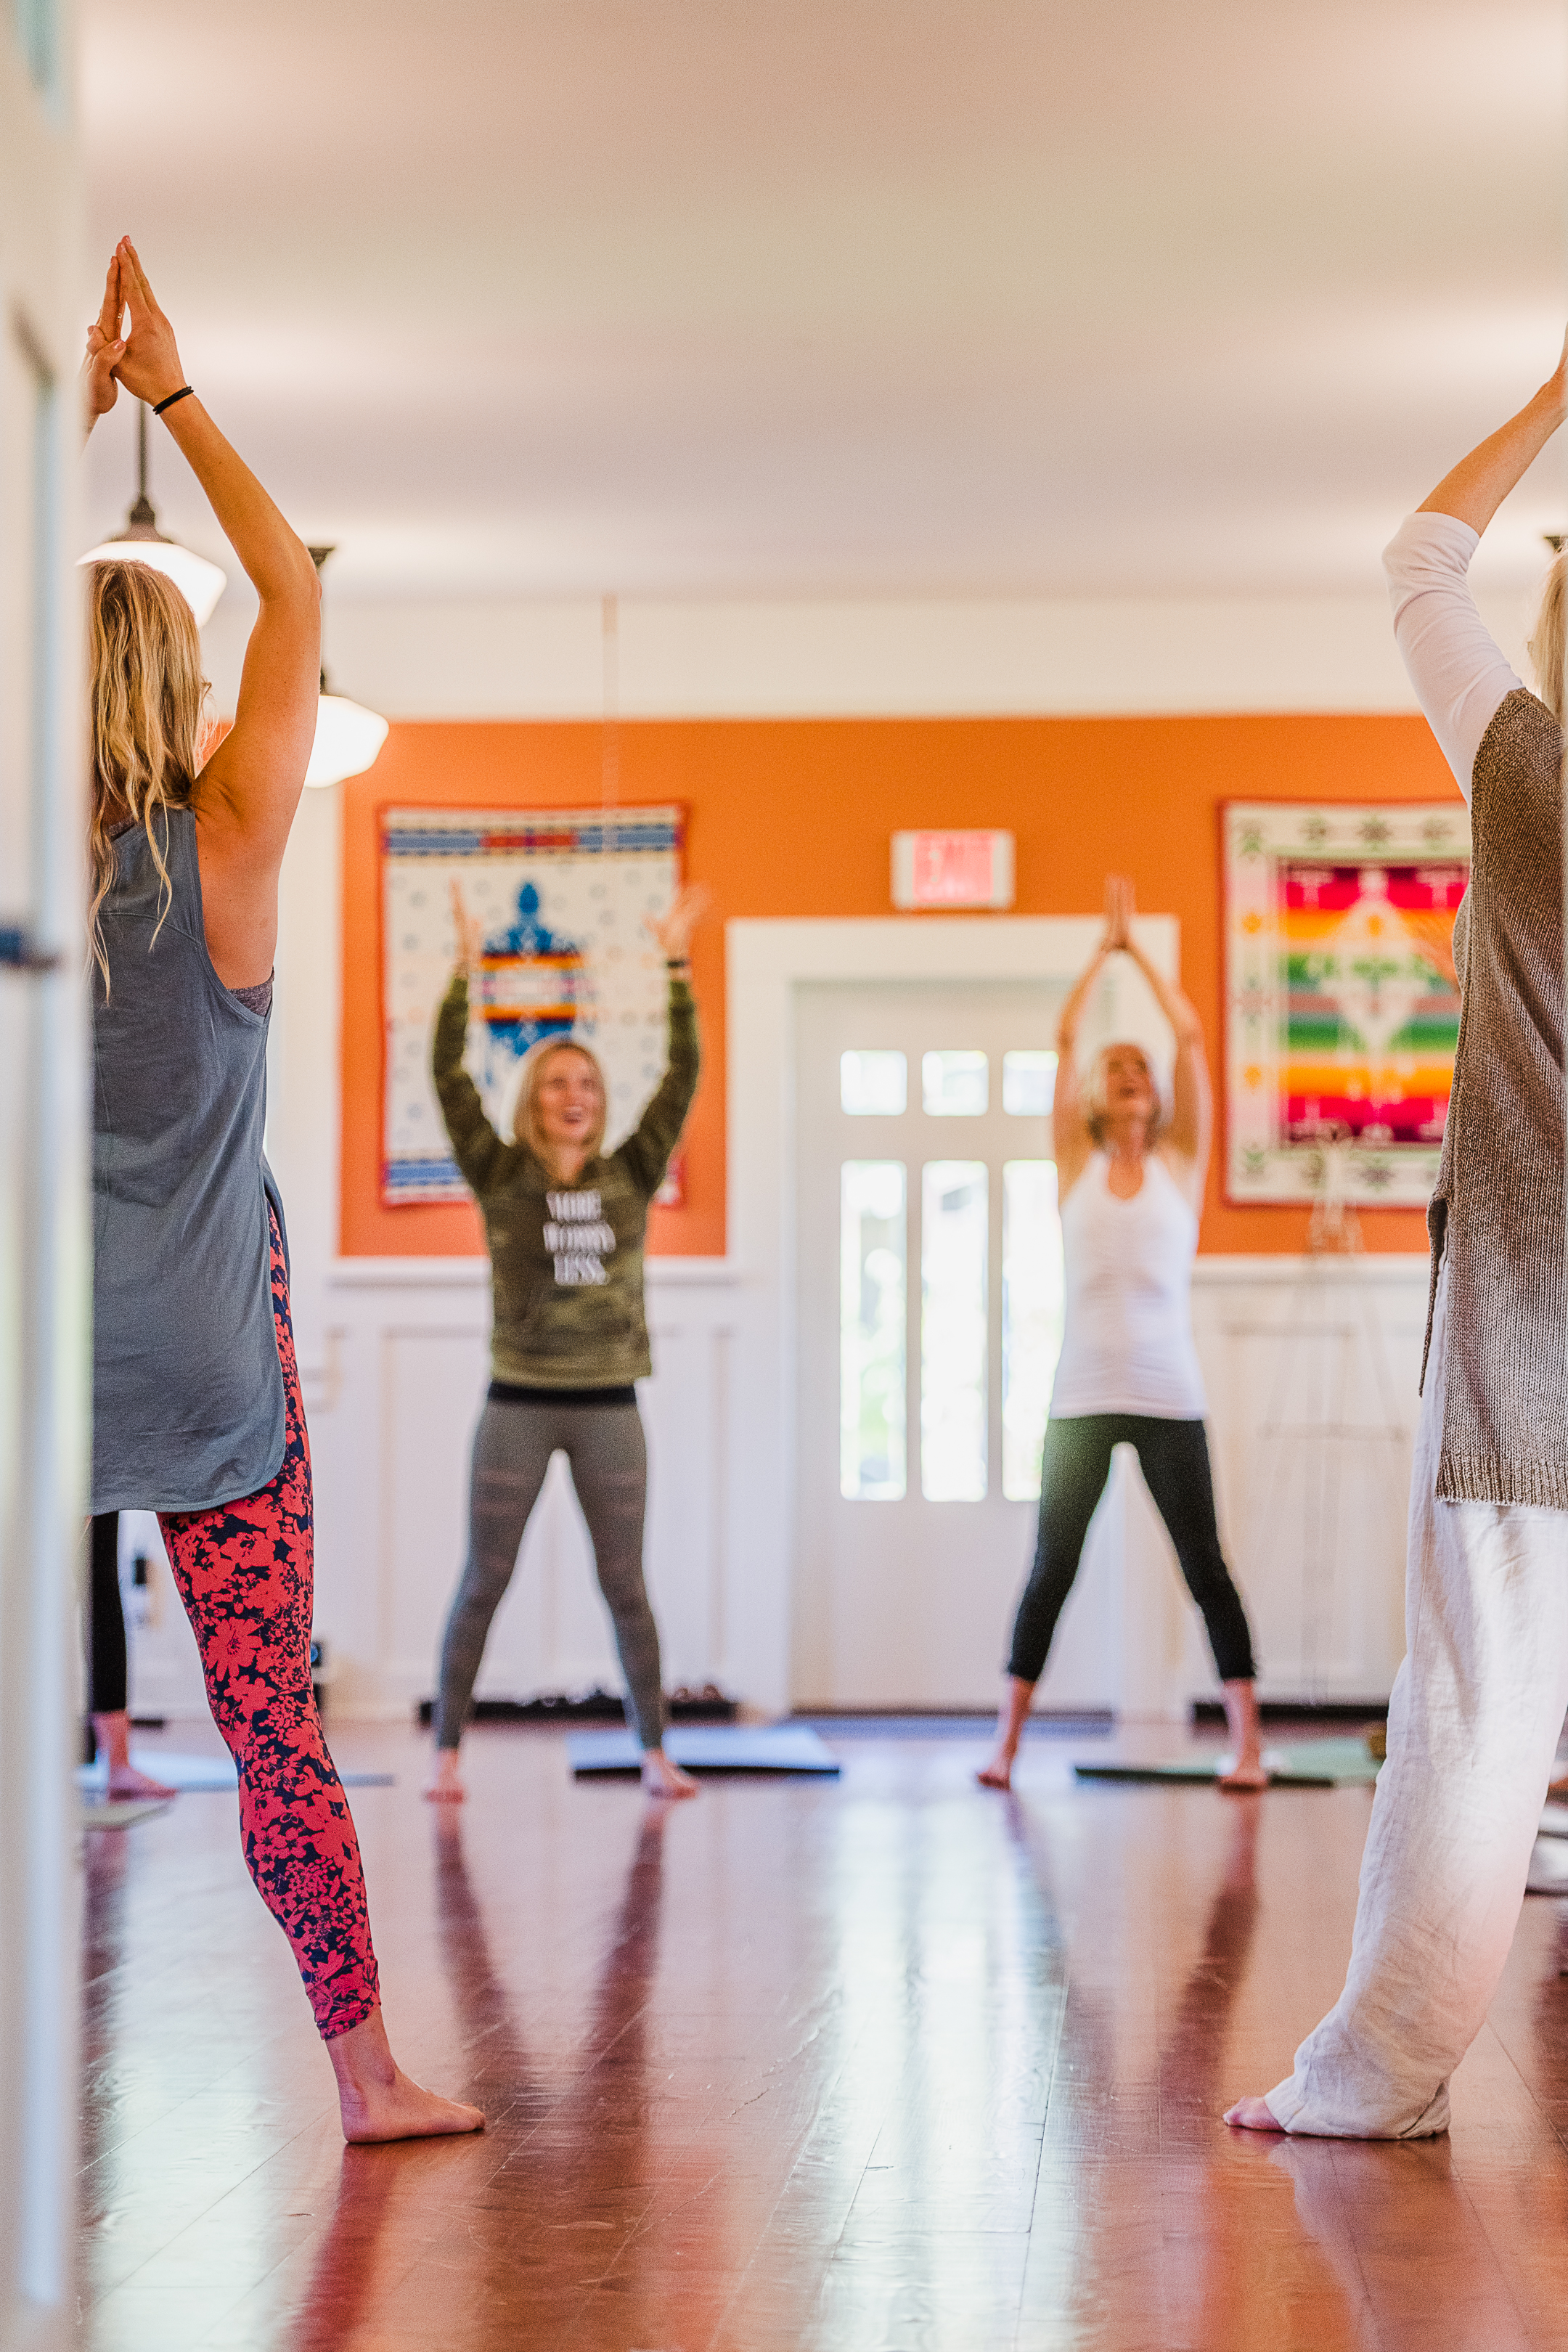 Friday - 7:30-9am: Morning Movement9-10am: Breakfast10-11am: Workshop11-12pm: Class12-1pm: Cooking Class1-2pm: Lunch2-5pm: Free time (optional massage time)5-7pm: Yoga/Meditation7pm: Dinner8pm: Campfire